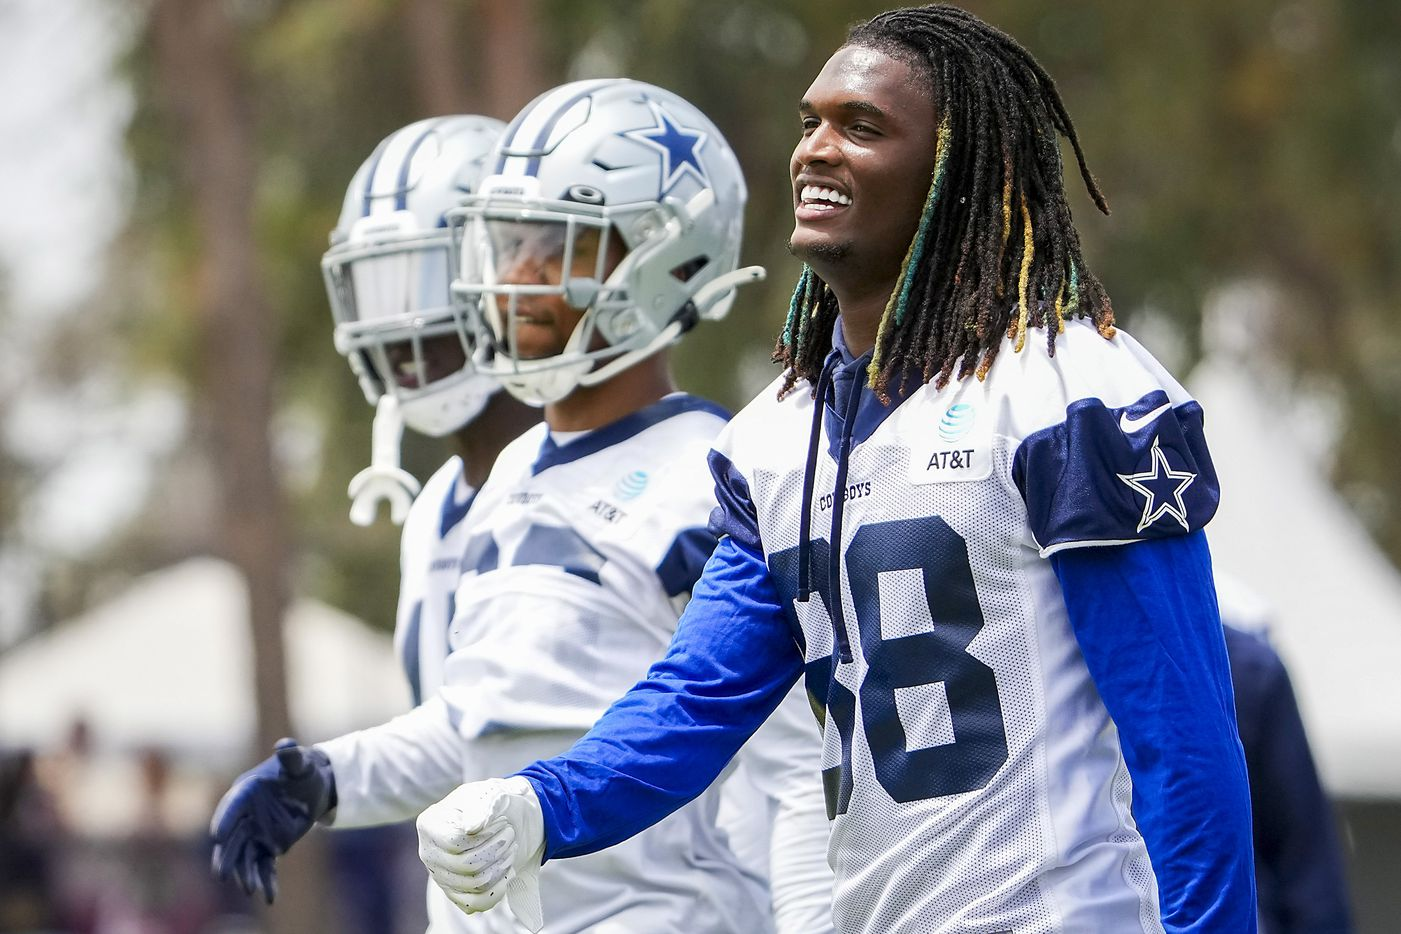 Dallas Cowboys wide receiver CeeDee Lamb (88) smiles as he walks between drills during a practice at training camp on Saturday, July 24, 2021, in Oxnard, Calif.